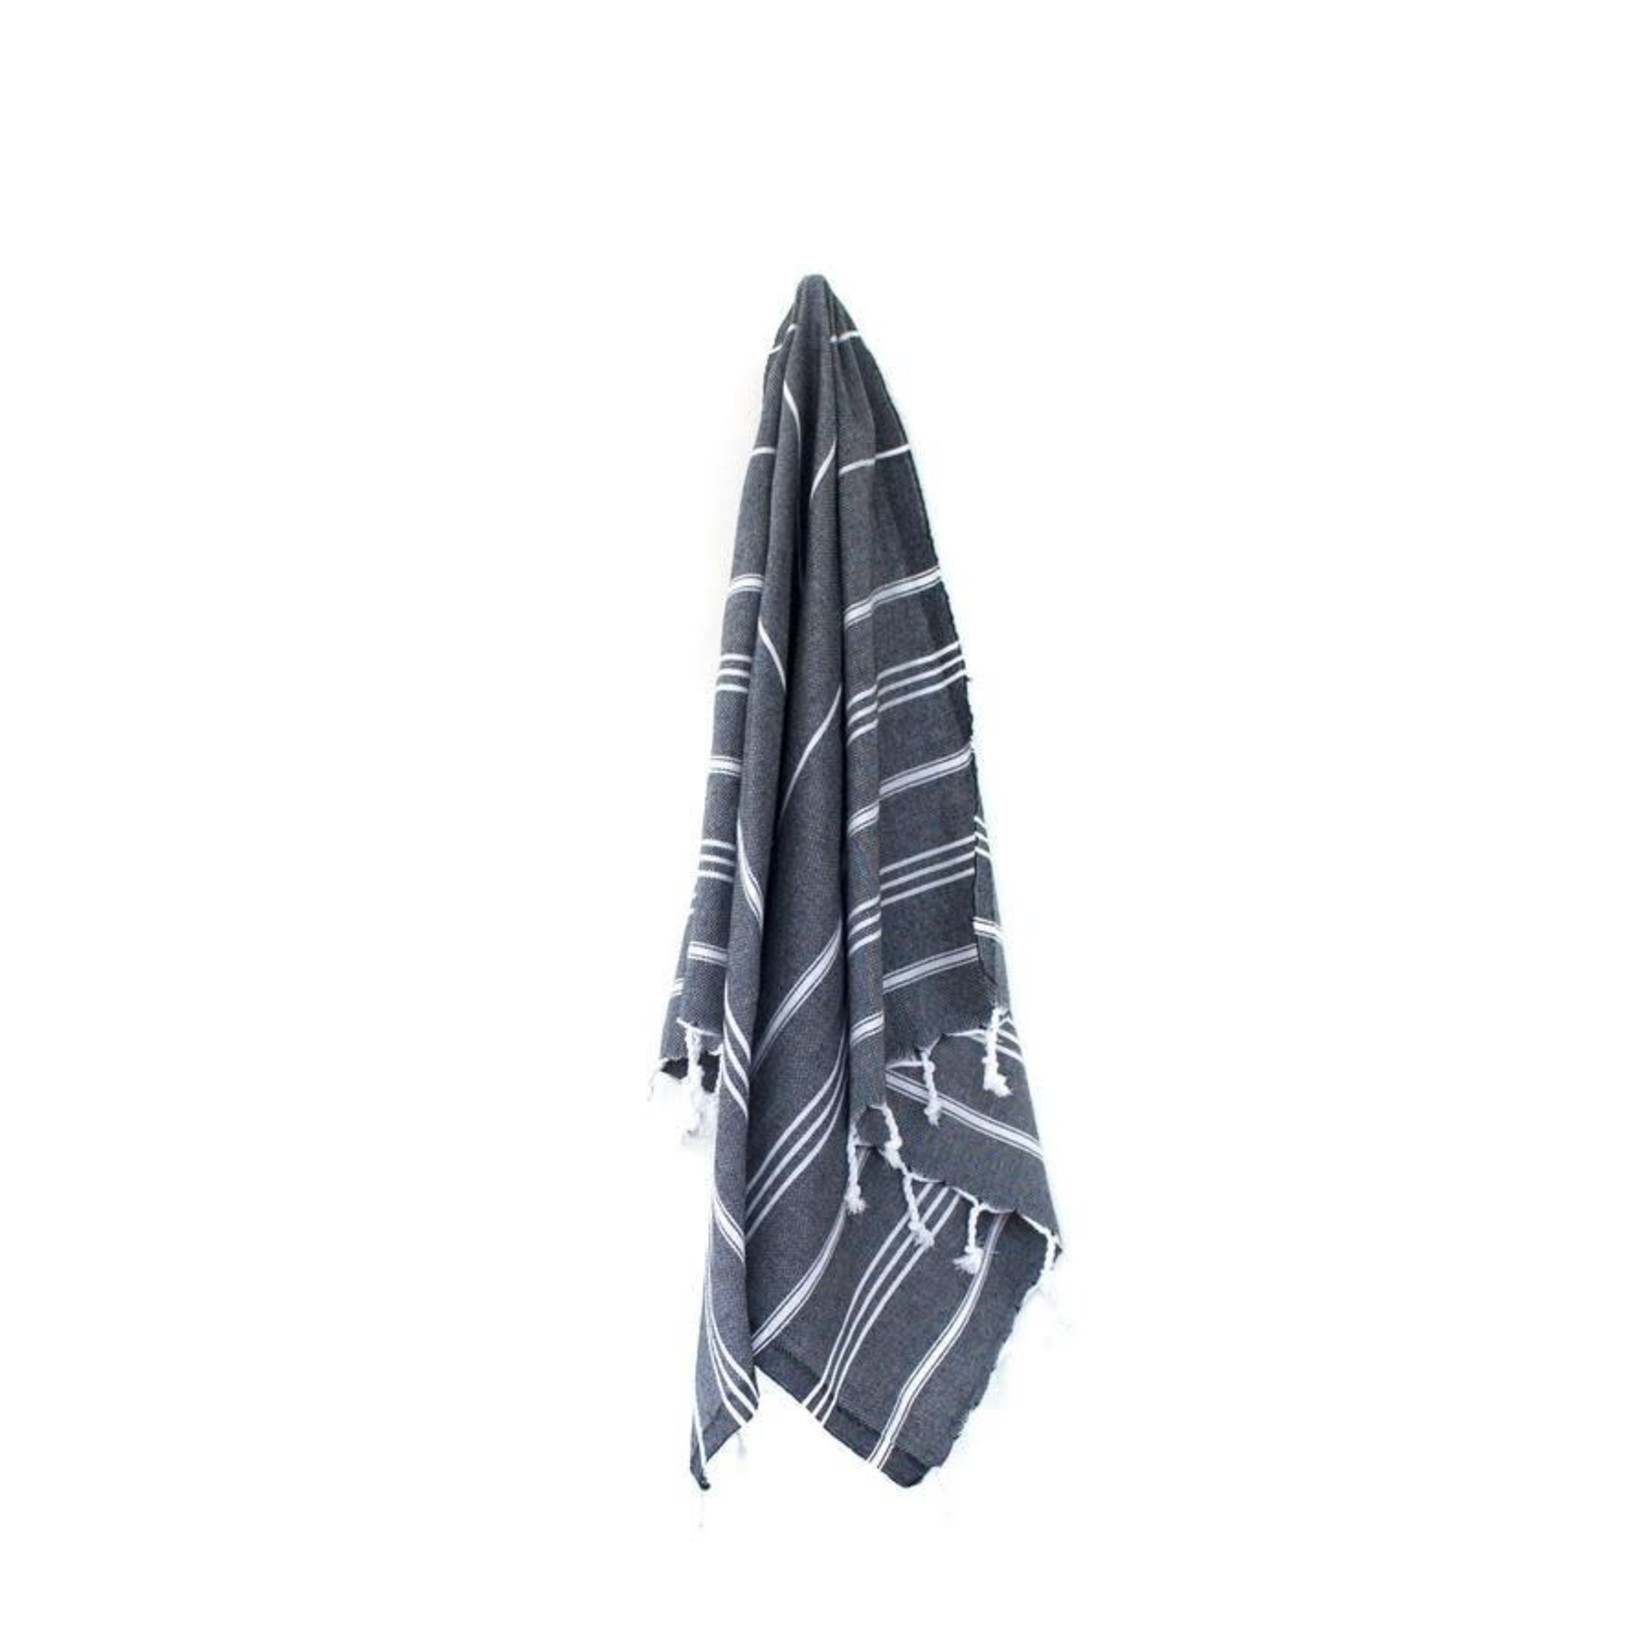 MARIN SMALL TOWEL - BLACK